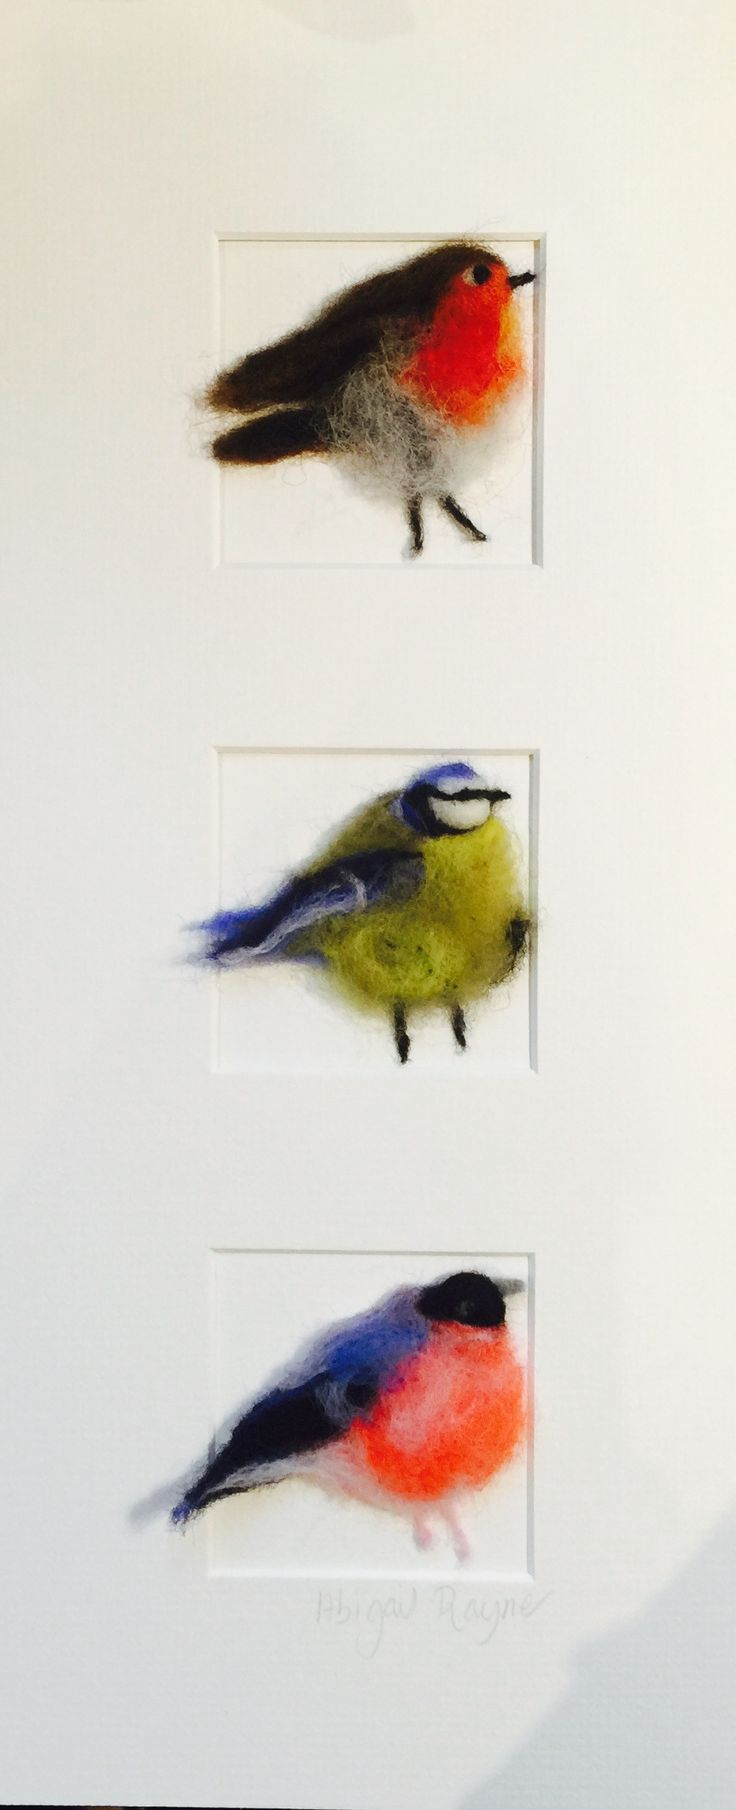 """A quirky, fun, three dimensional hand felted piece of wall art. Three different British garden birds, Robin, Bluetit and Bullfinch, so named """"three in a box"""". Would make a great picture for the kitchen or as a unique gift.Bespoke white wooden box frame, size 20 x 42 x 3.5cm deepDue to the bespoke handmade nature, each piece is unique, but equally as beautiful.Lead time approx 1-2 weeksCommission taken, please do email me so we can have a chat about what yo..."""